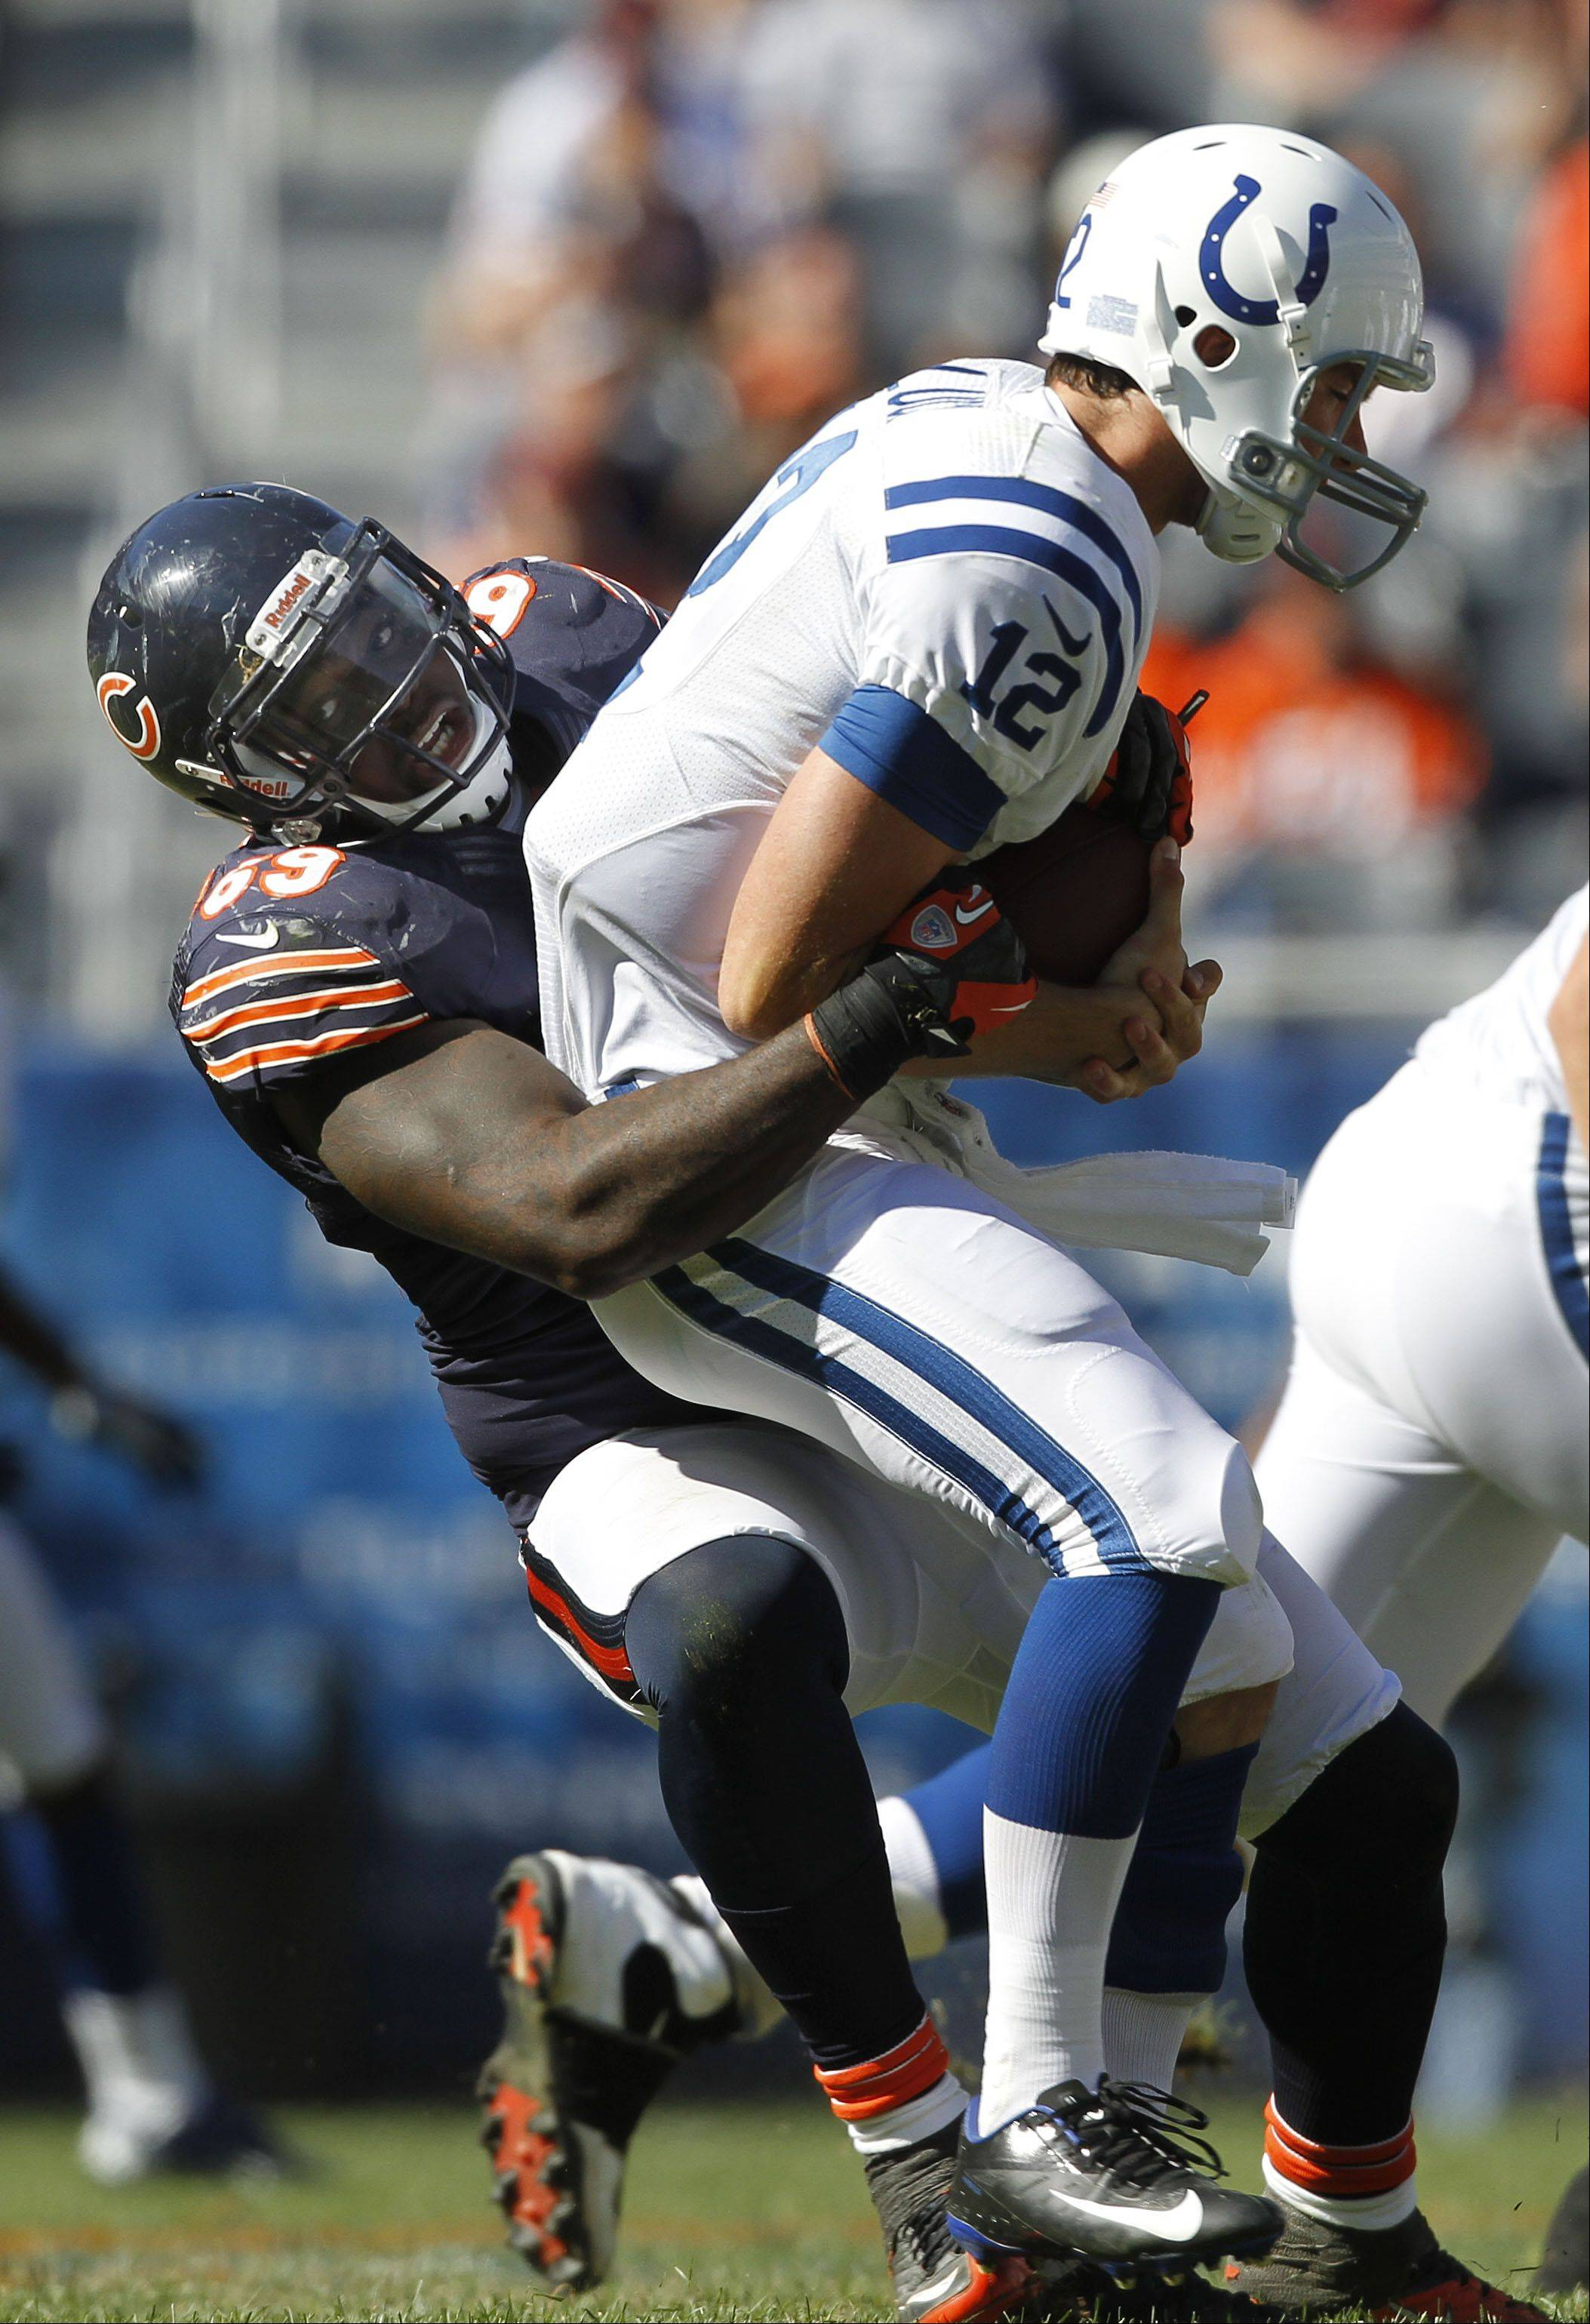 Chicago Bears defensive end Henry Melton sacks Indianapolis Colts quarterback Andrew Luck during the Bears season opener against the Indianapolis Colts Sunday at Soldier Field in Chicago. The Bears won 41-21